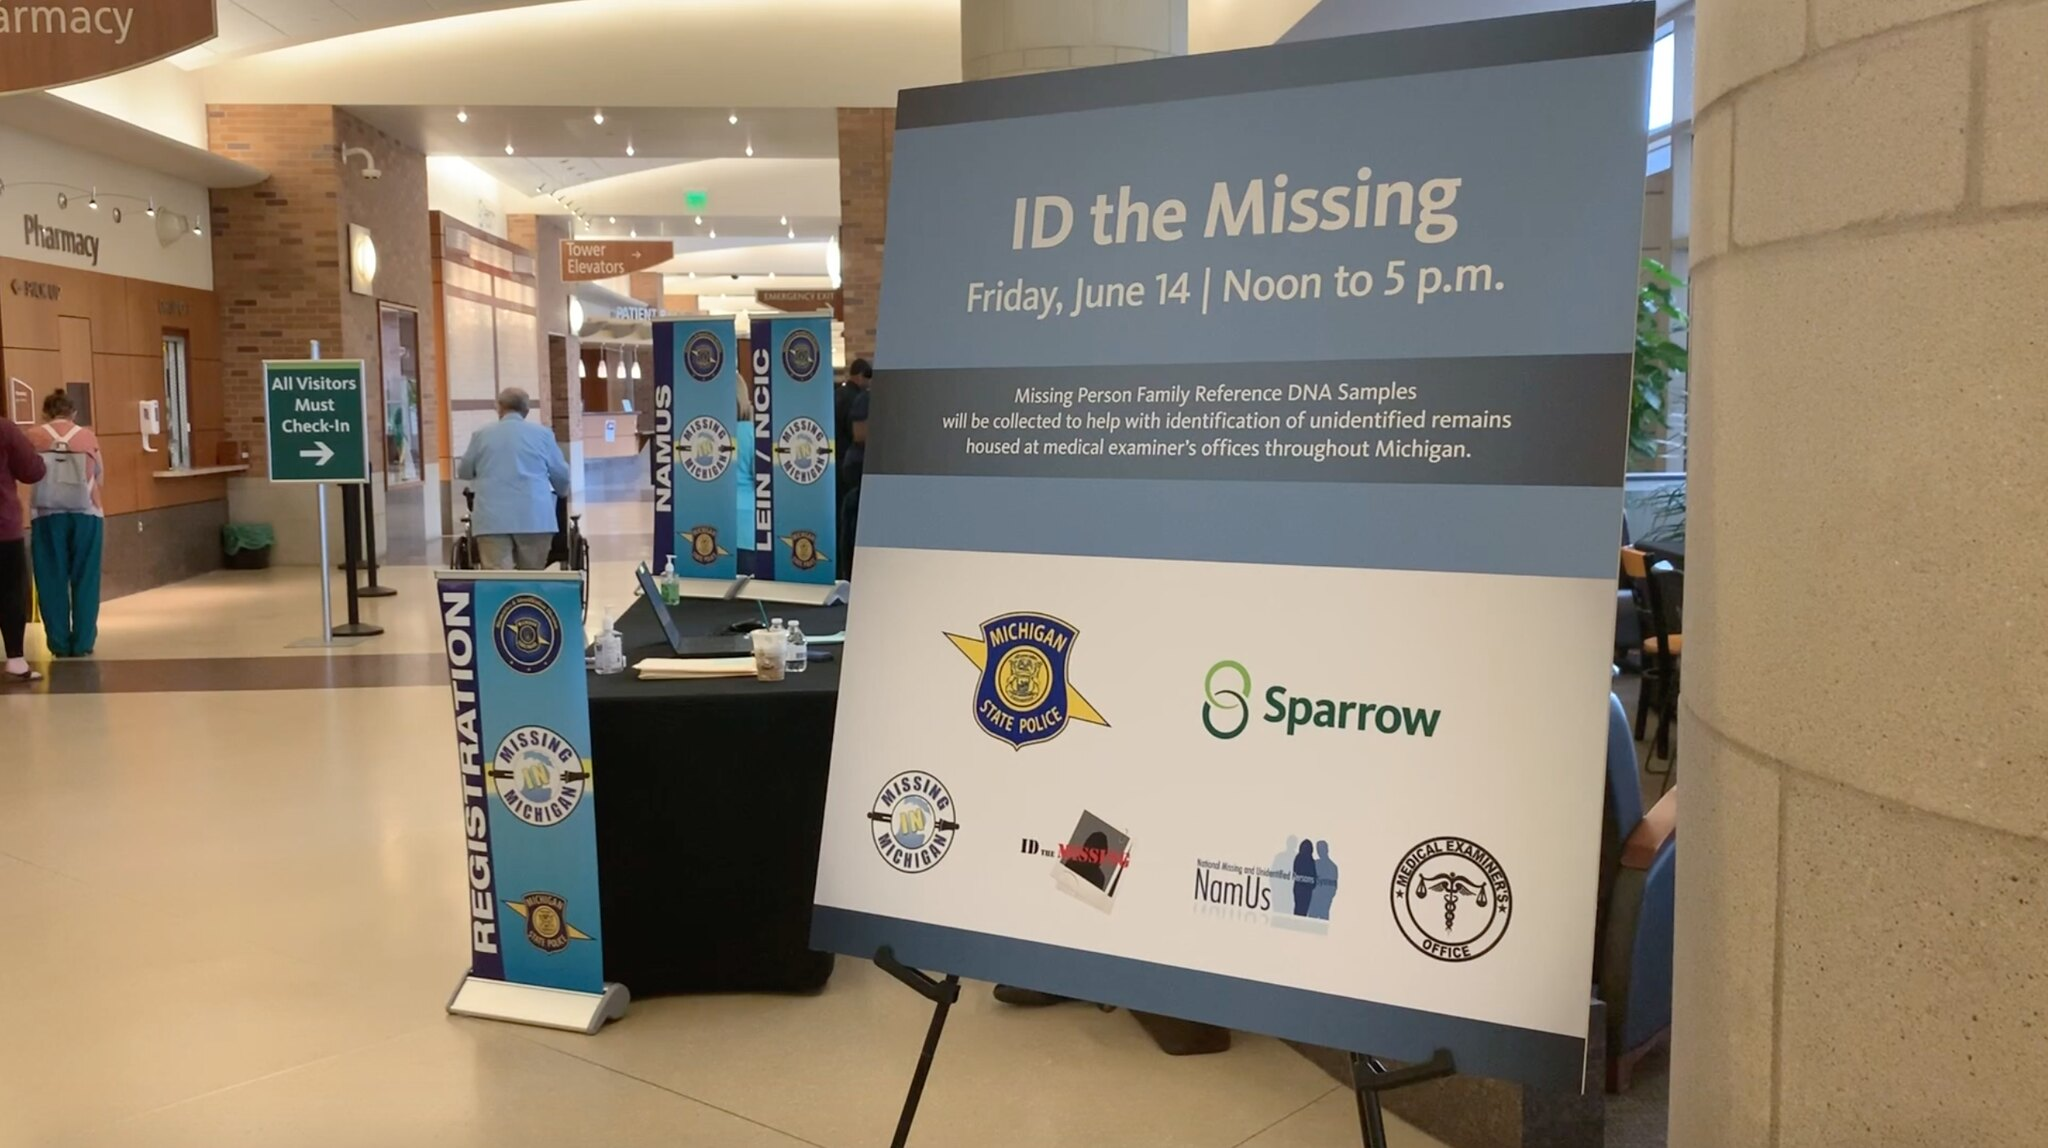 ID The Missing Event in Lansing